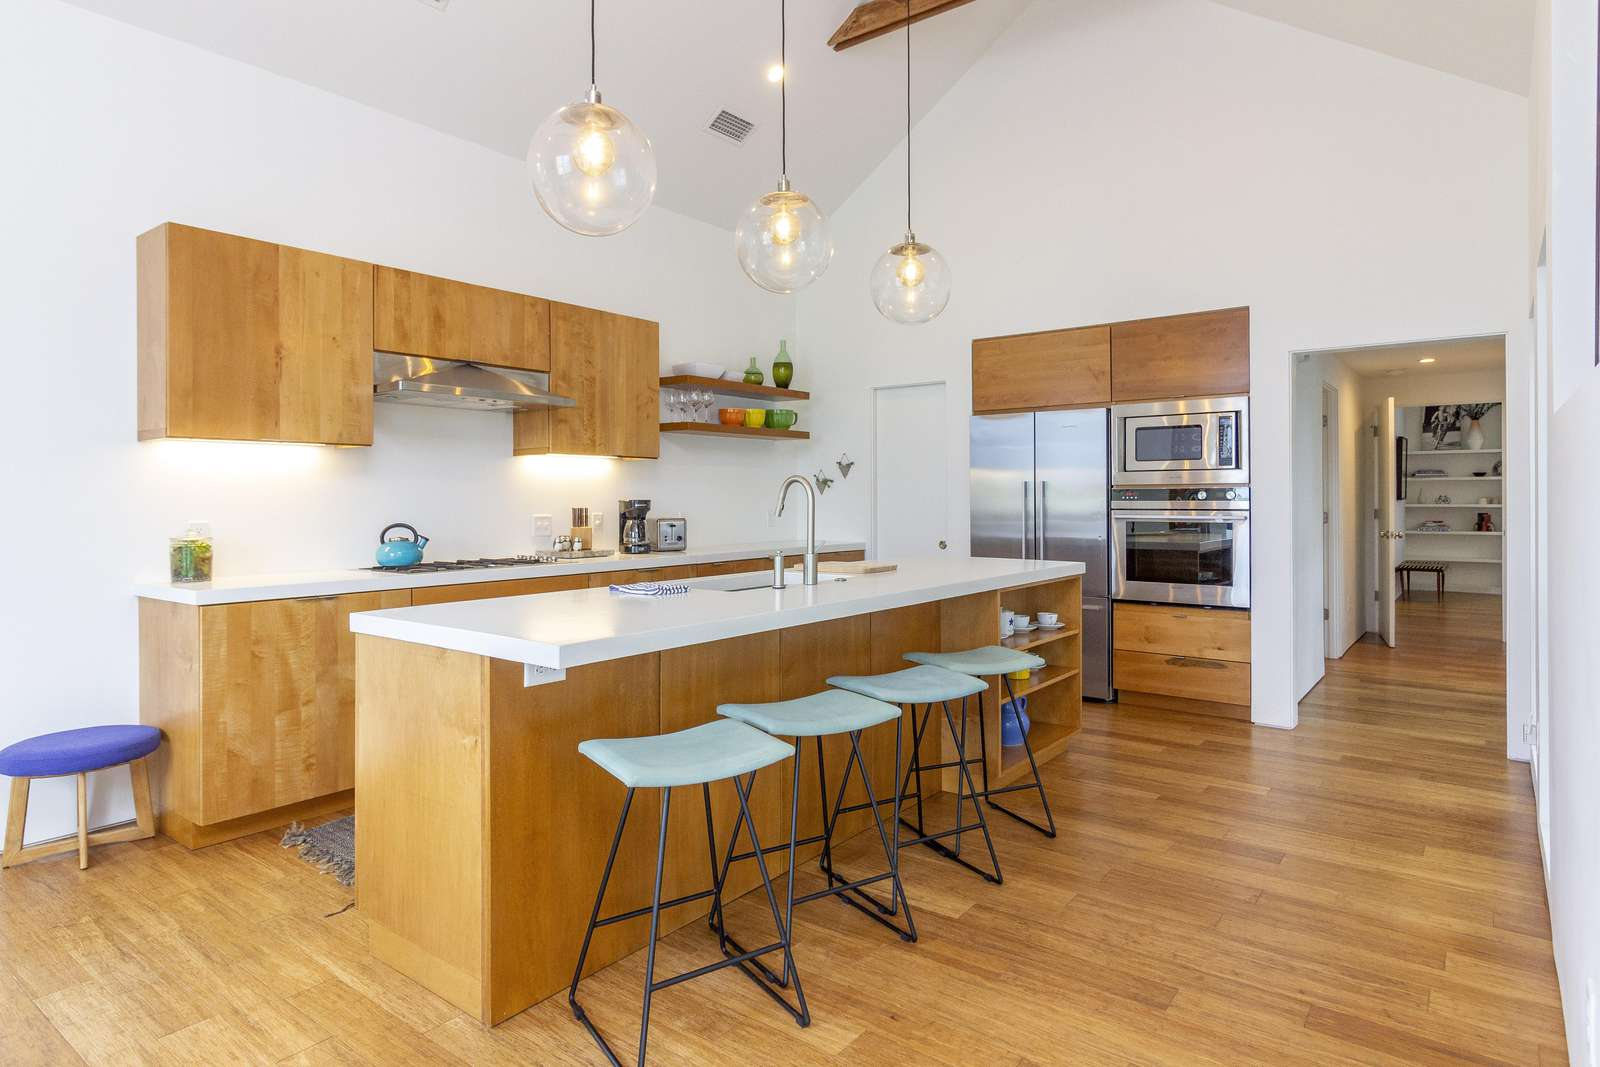 Kitchen Counter with Seating